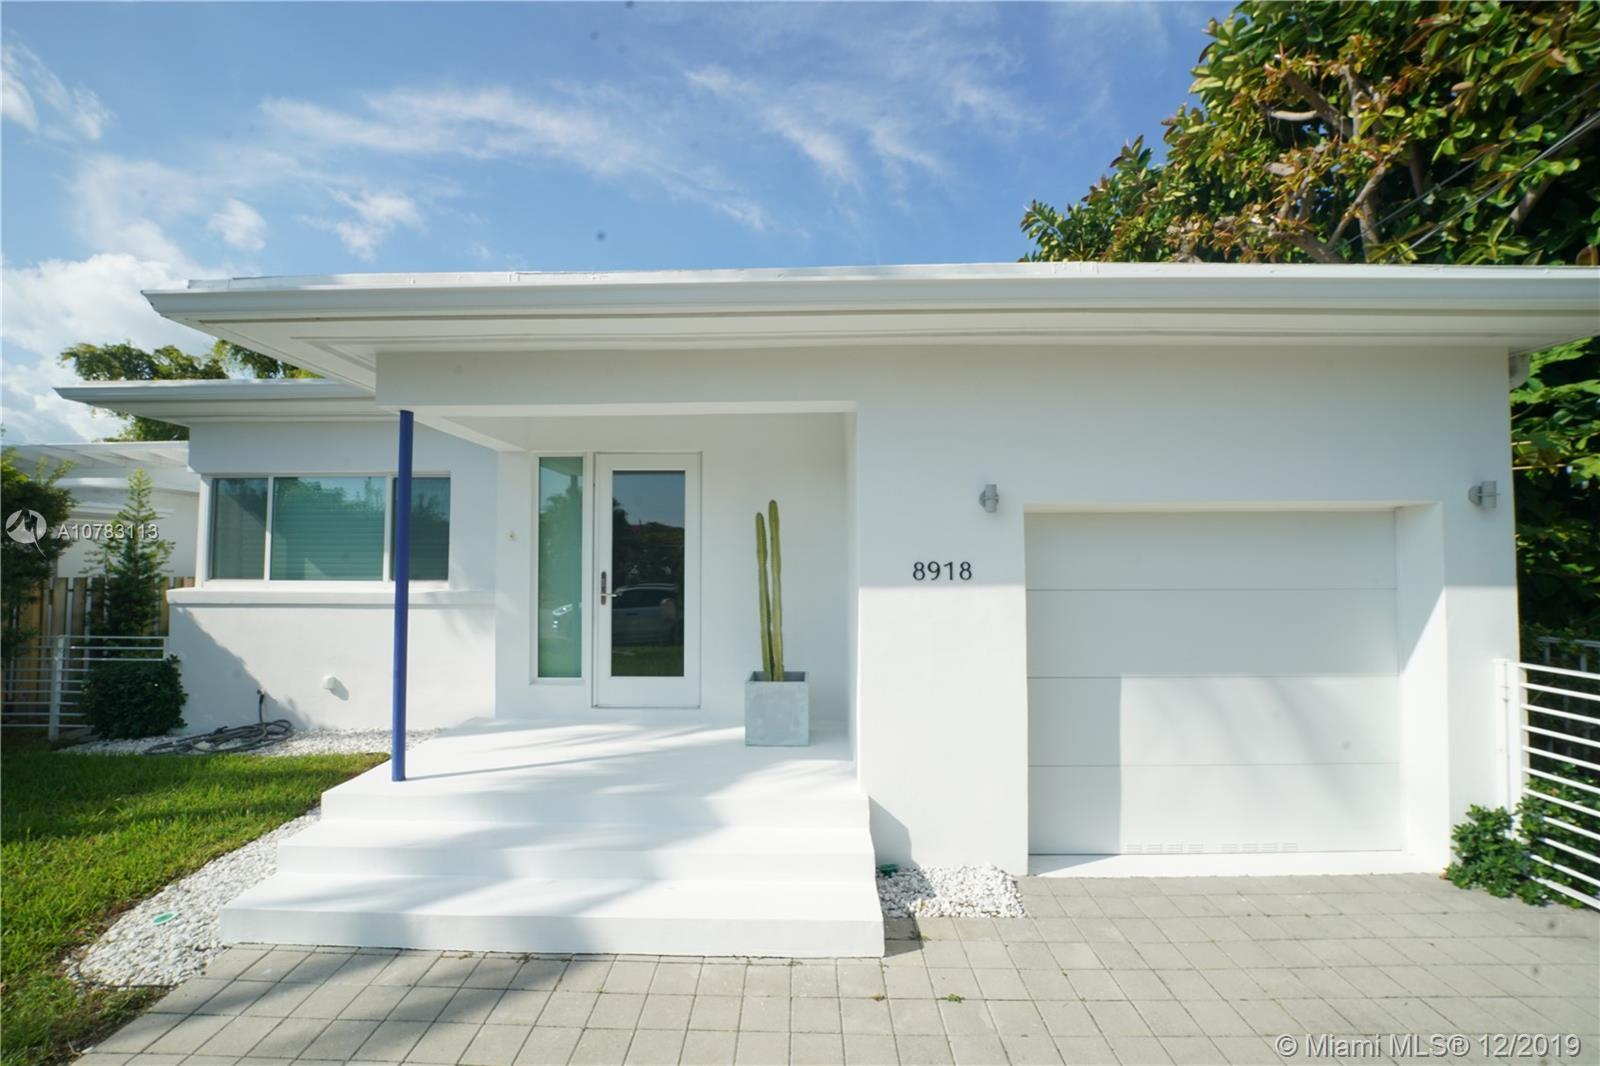 Modern and completely remodeled 3 bedrooms 2 bathrooms, plus garage Surfside house. Custom made in G